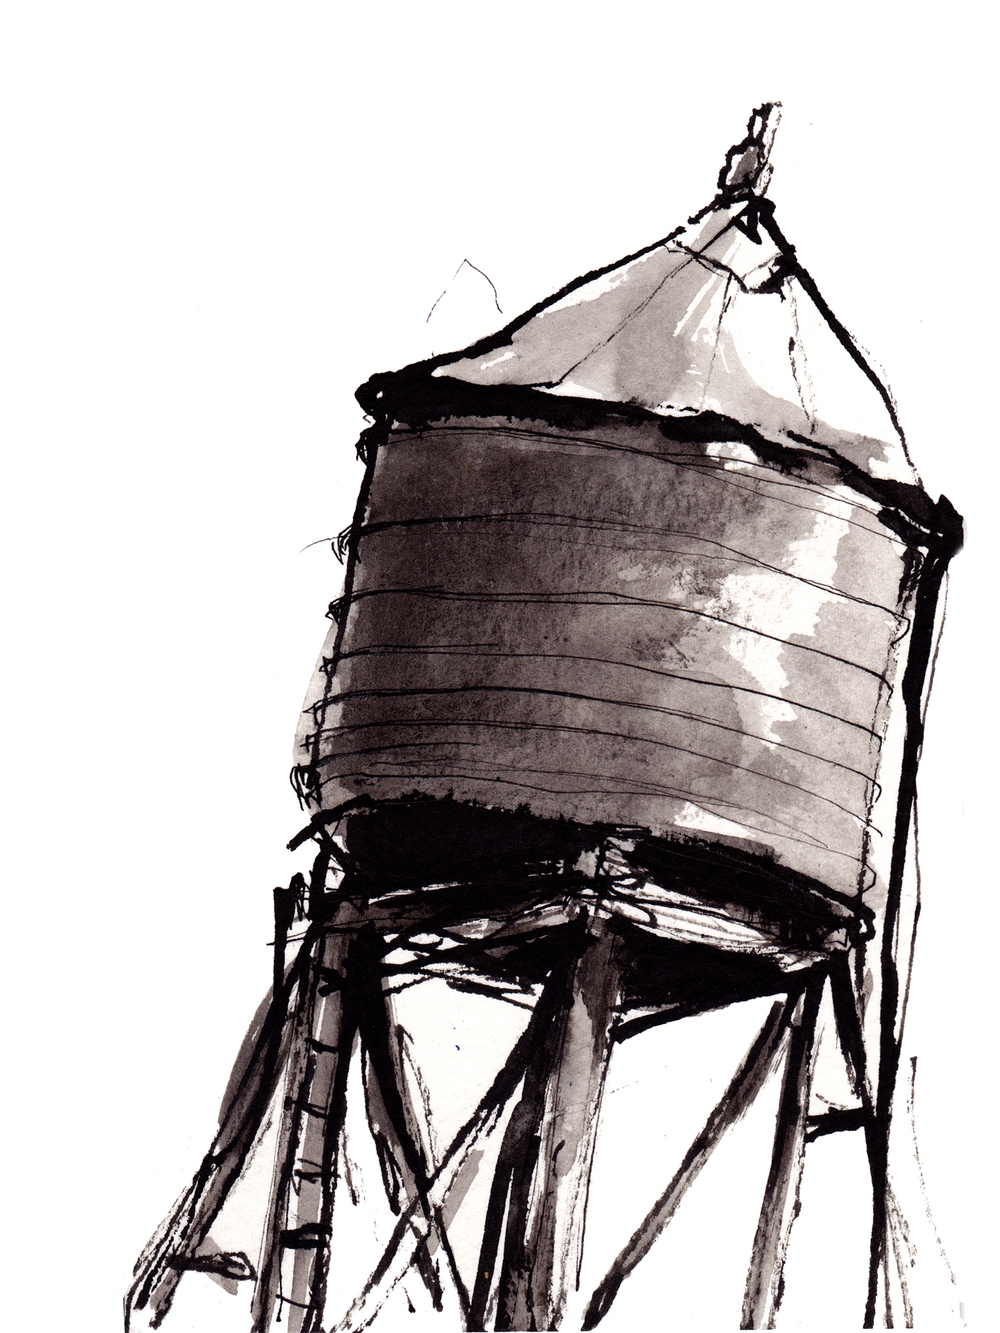 Water Tower No. 24